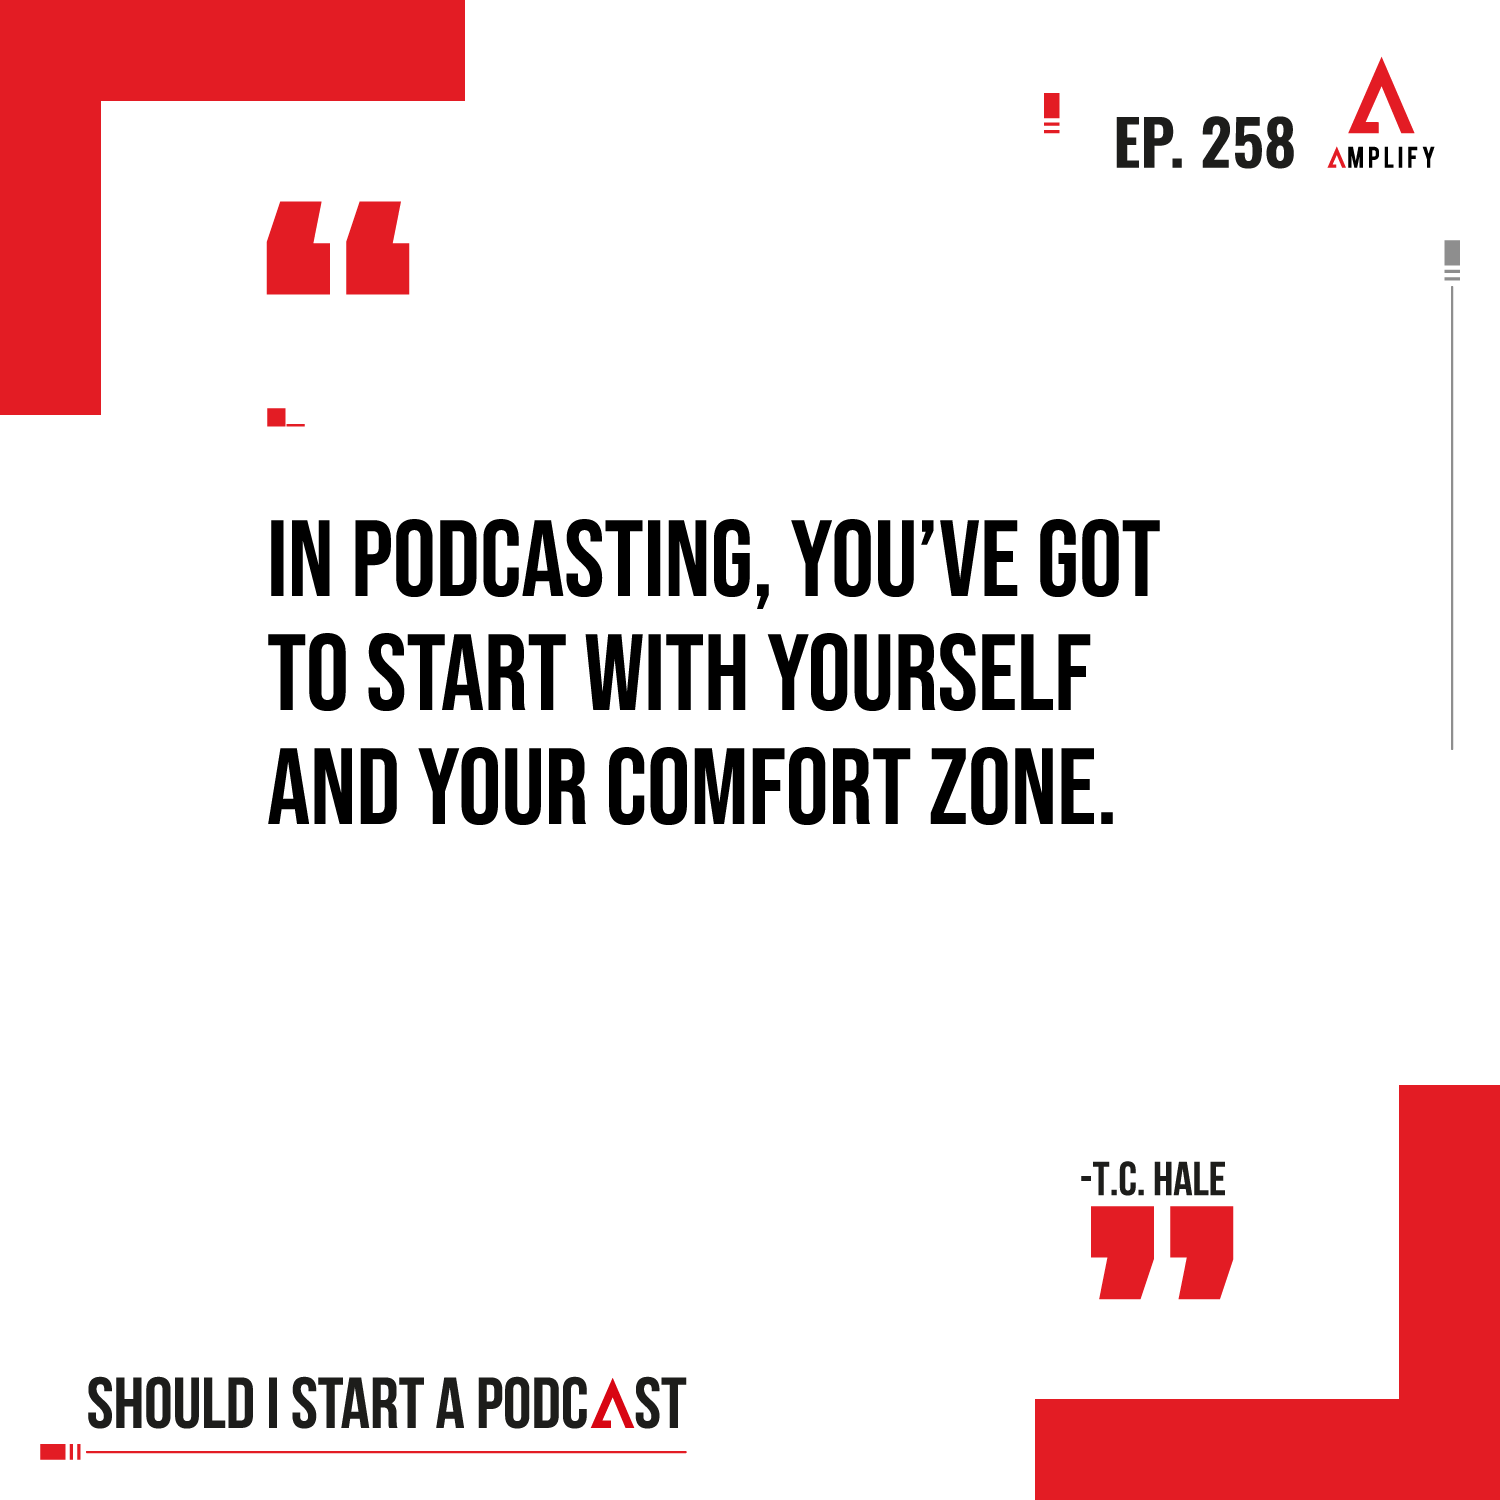 decorative image with the quote In podcasting, you've got to start with yourself and your comfort zone.